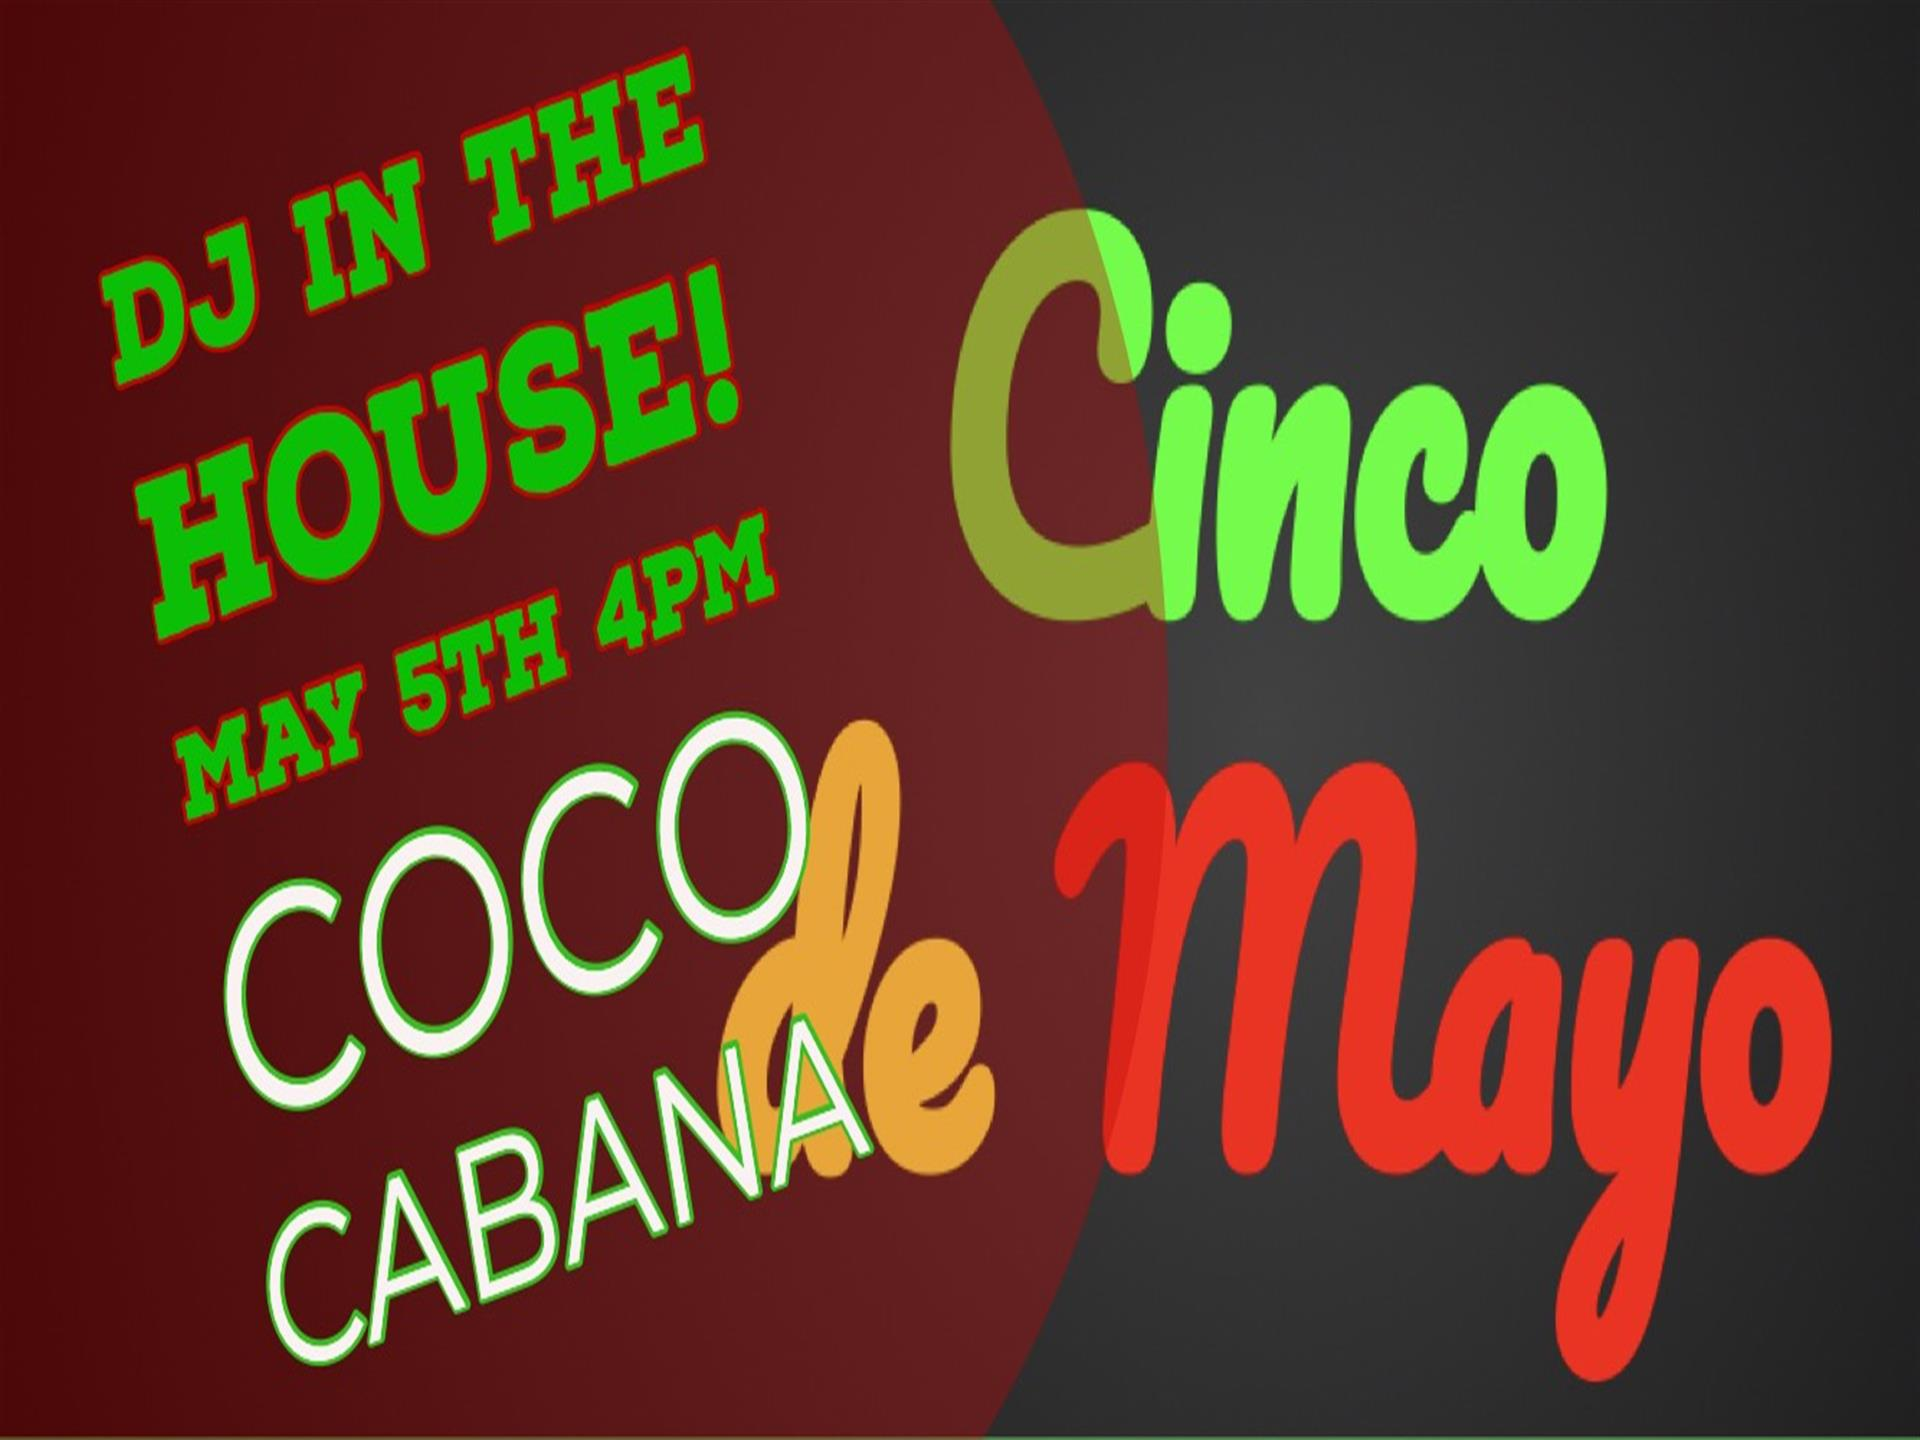 DJ in the House! May 5th at 4PM. Cinco de Mayo